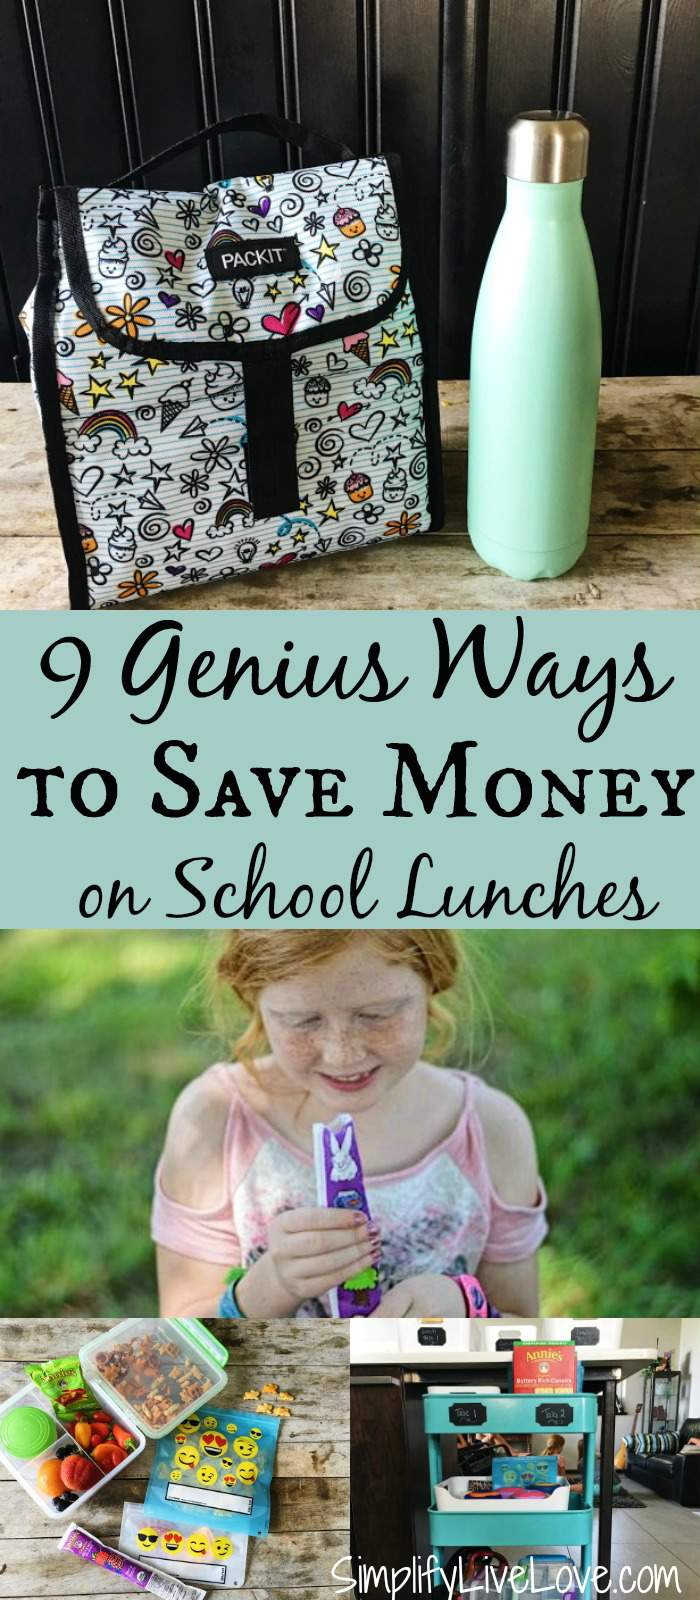 Save money on school lunches with these 9 genius tips! They're all great tips, but number 7 and 9 are my favorite.